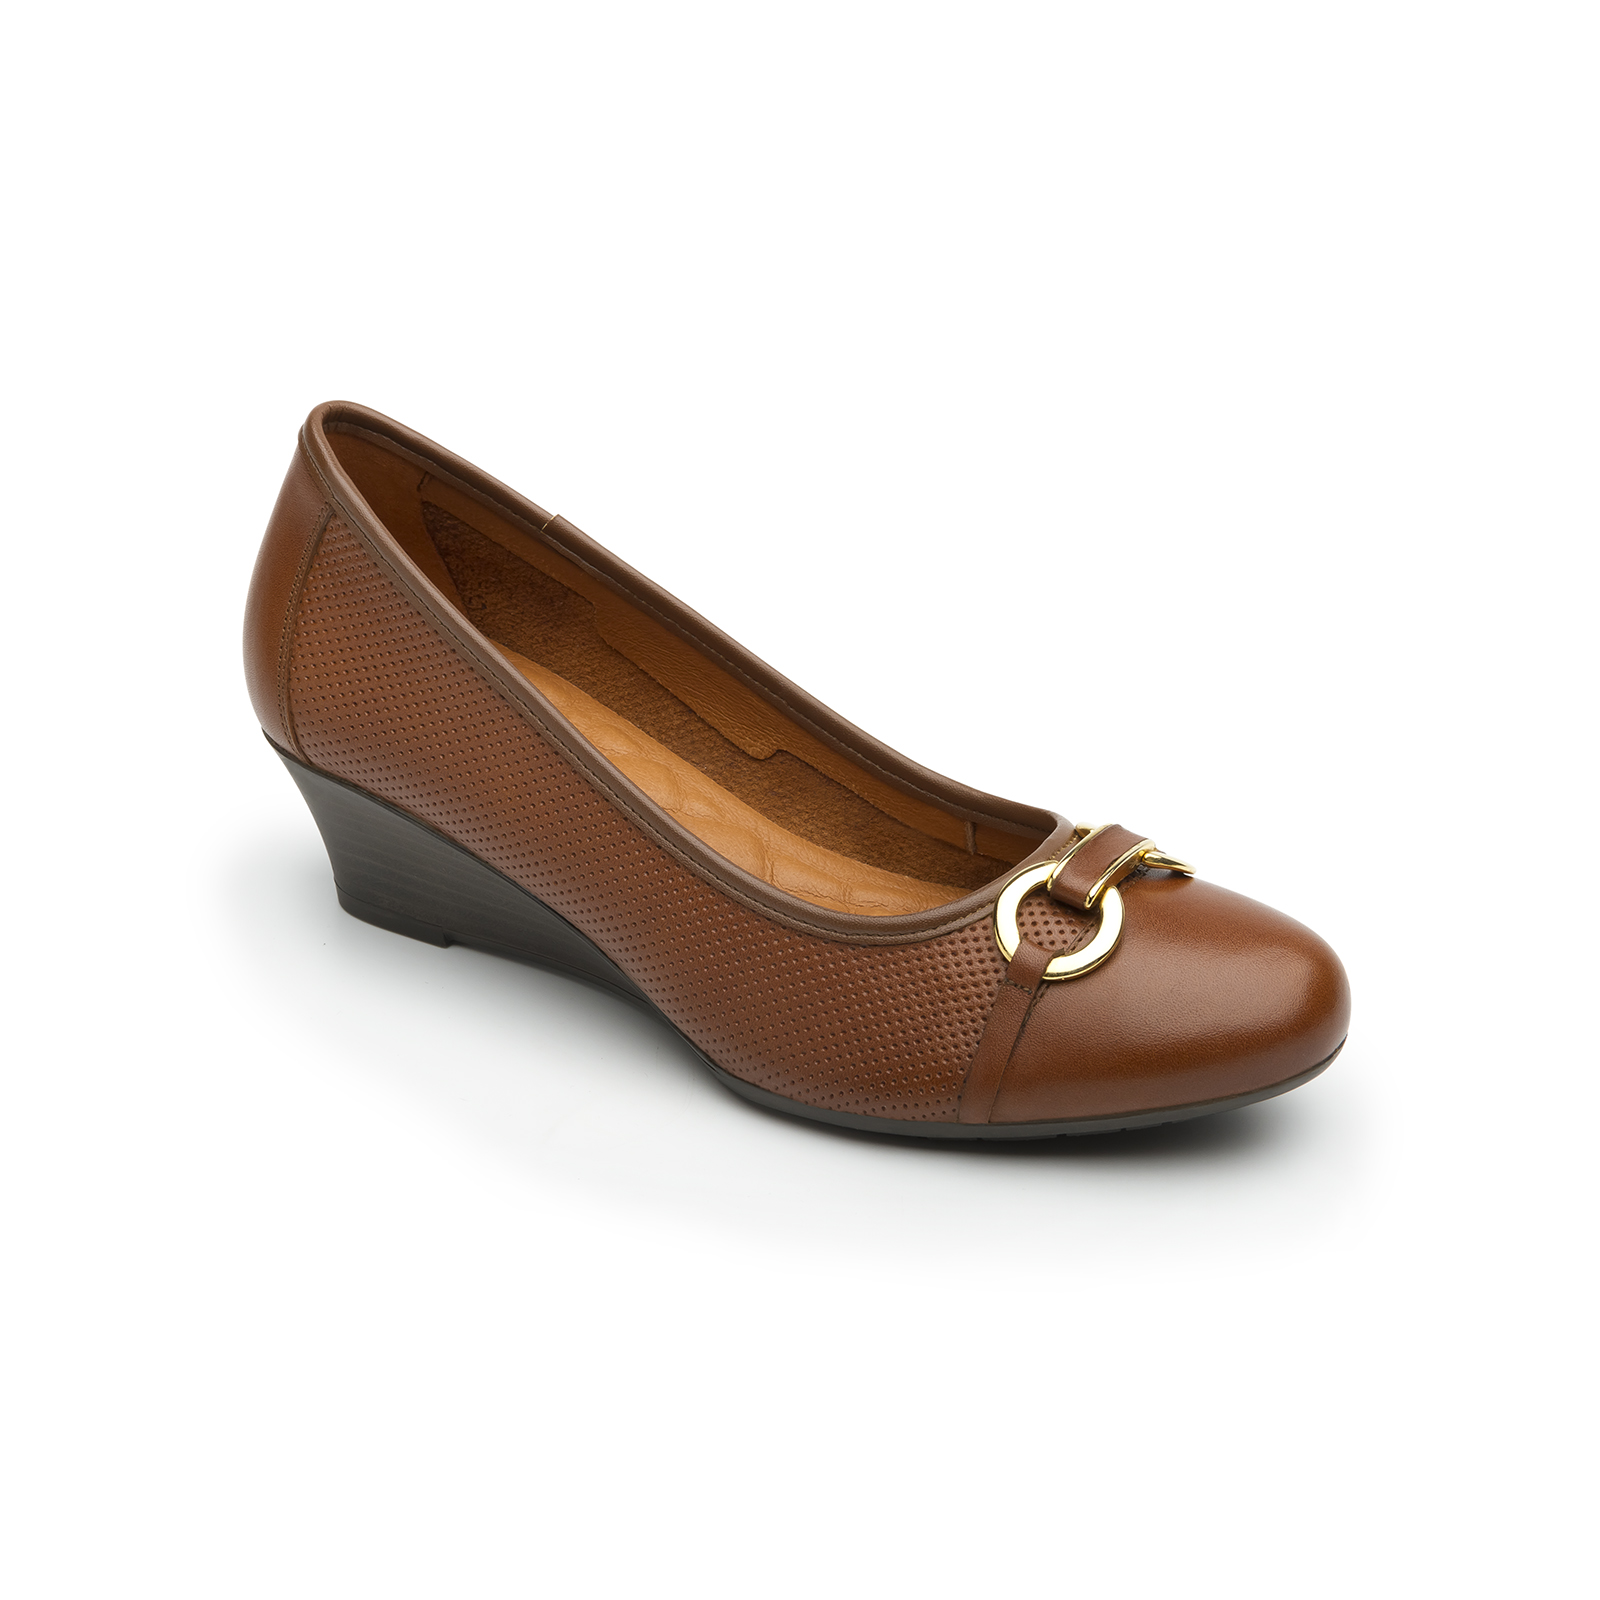 Agata 18813 In Whiskey Women S Wedges Flexi Shoes